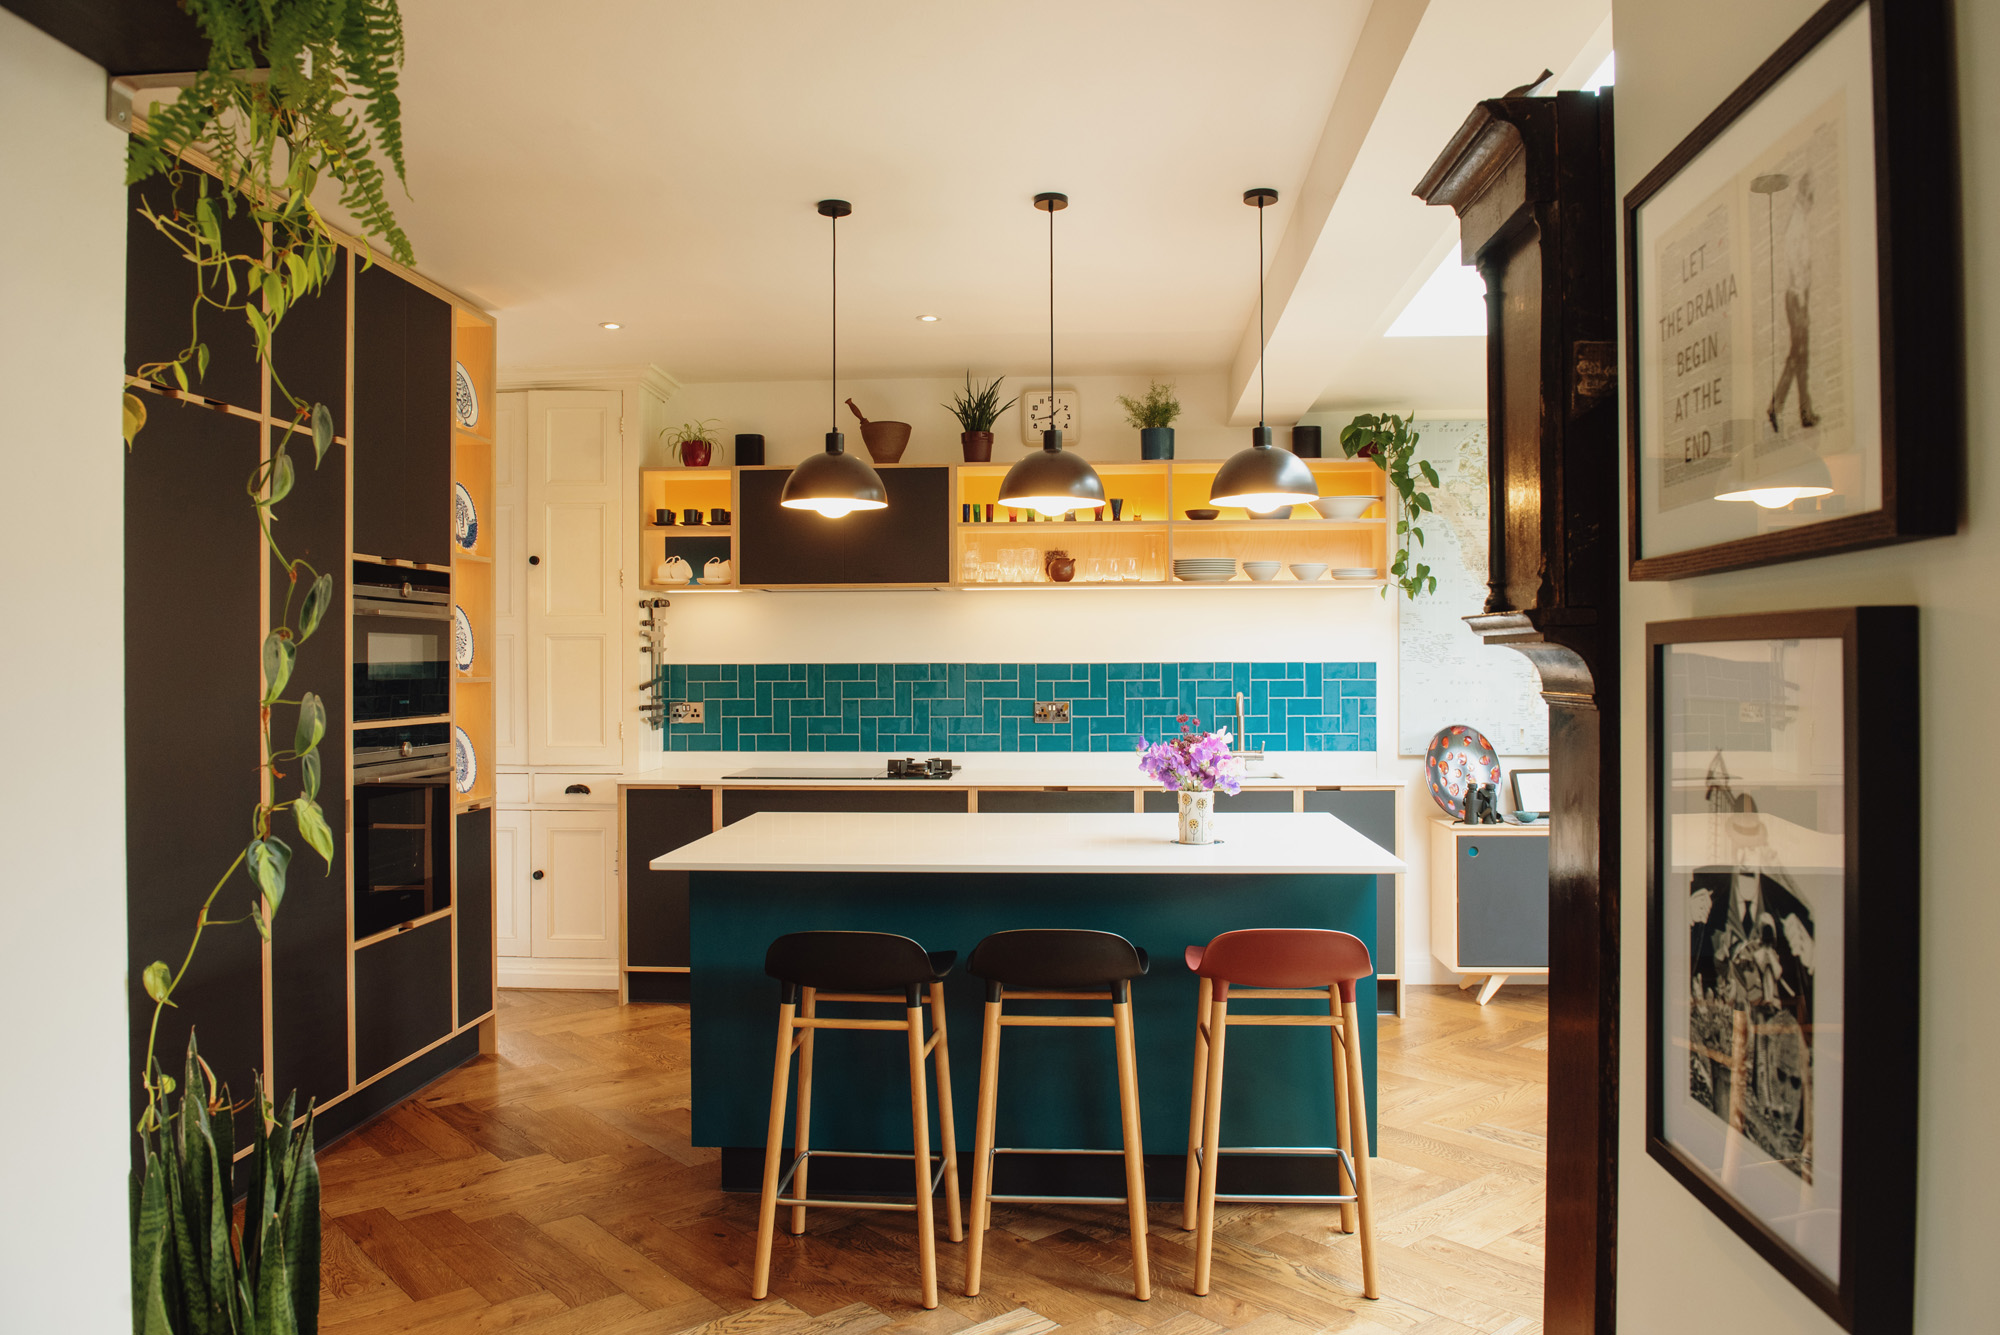 View of colourful kitchen